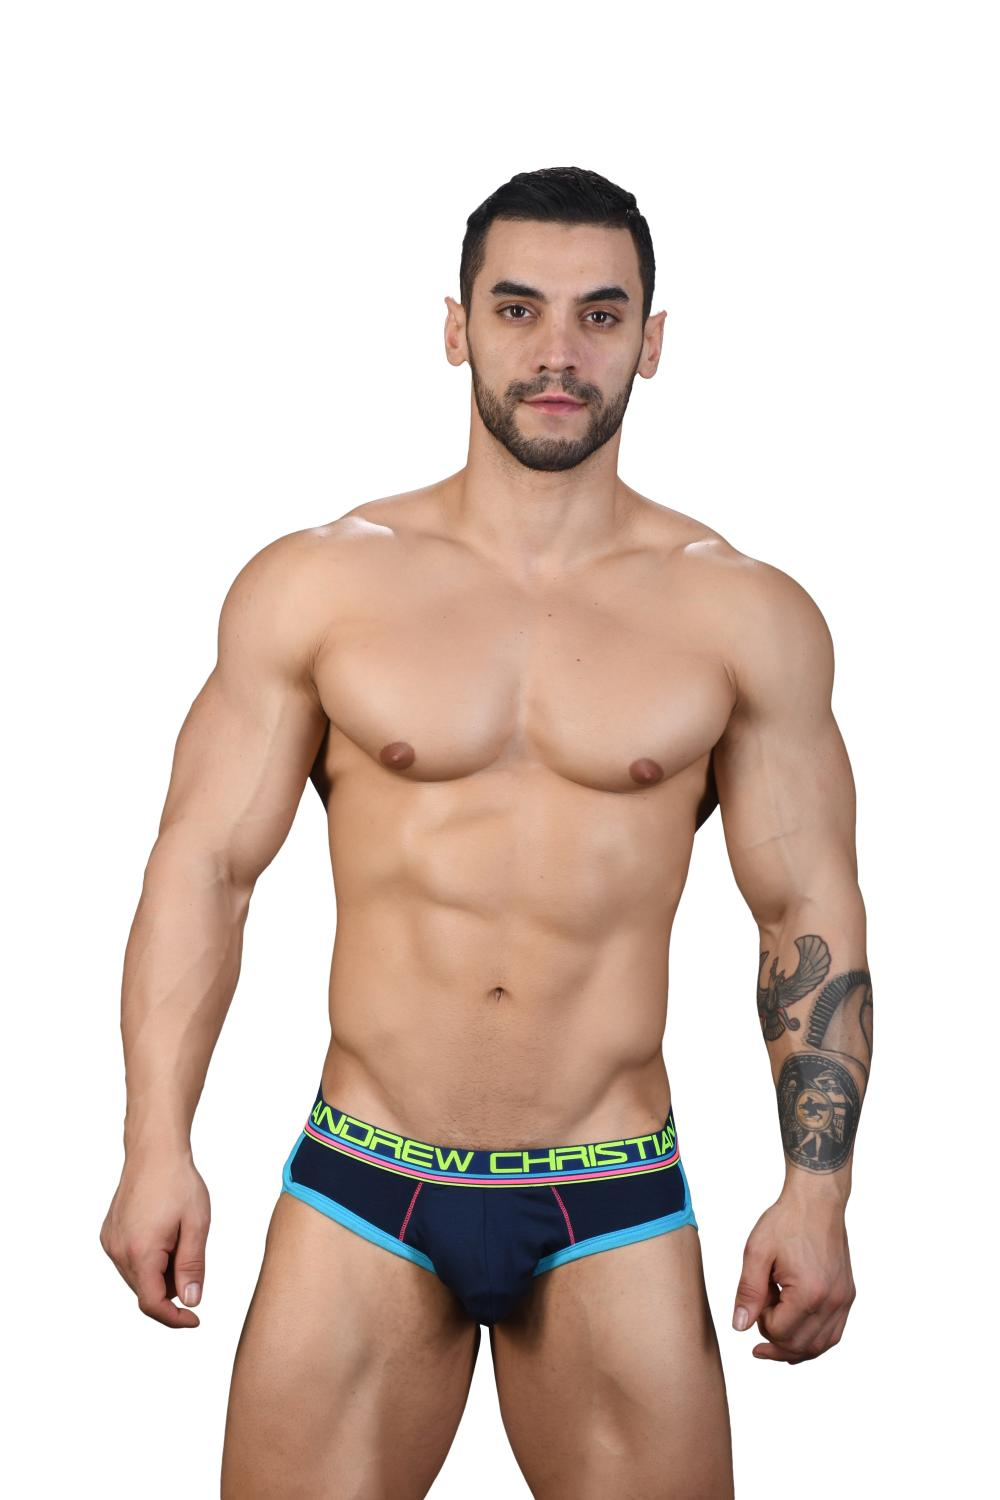 CoolFlex Modal Slipy ANDREW CHRISTIAN s Pushup kapsou Show-It Navy2